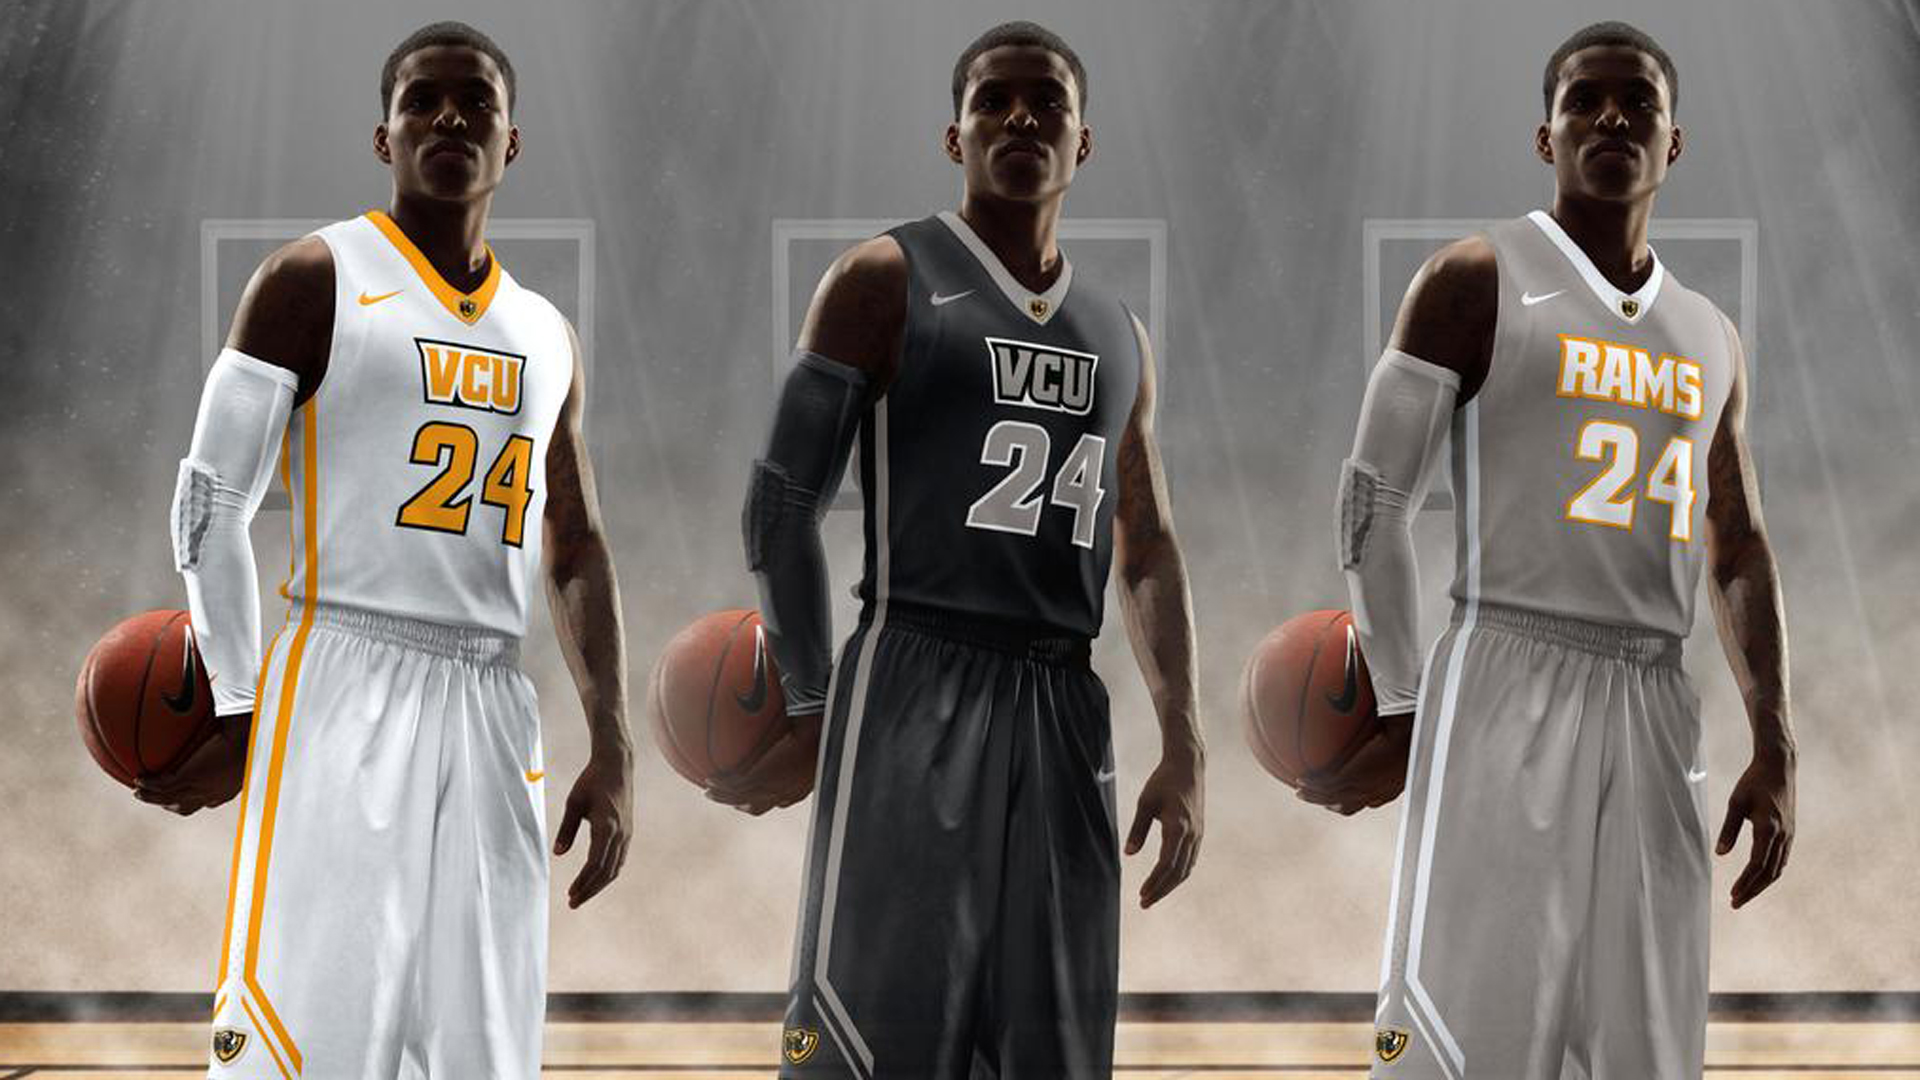 VCU Uniforms